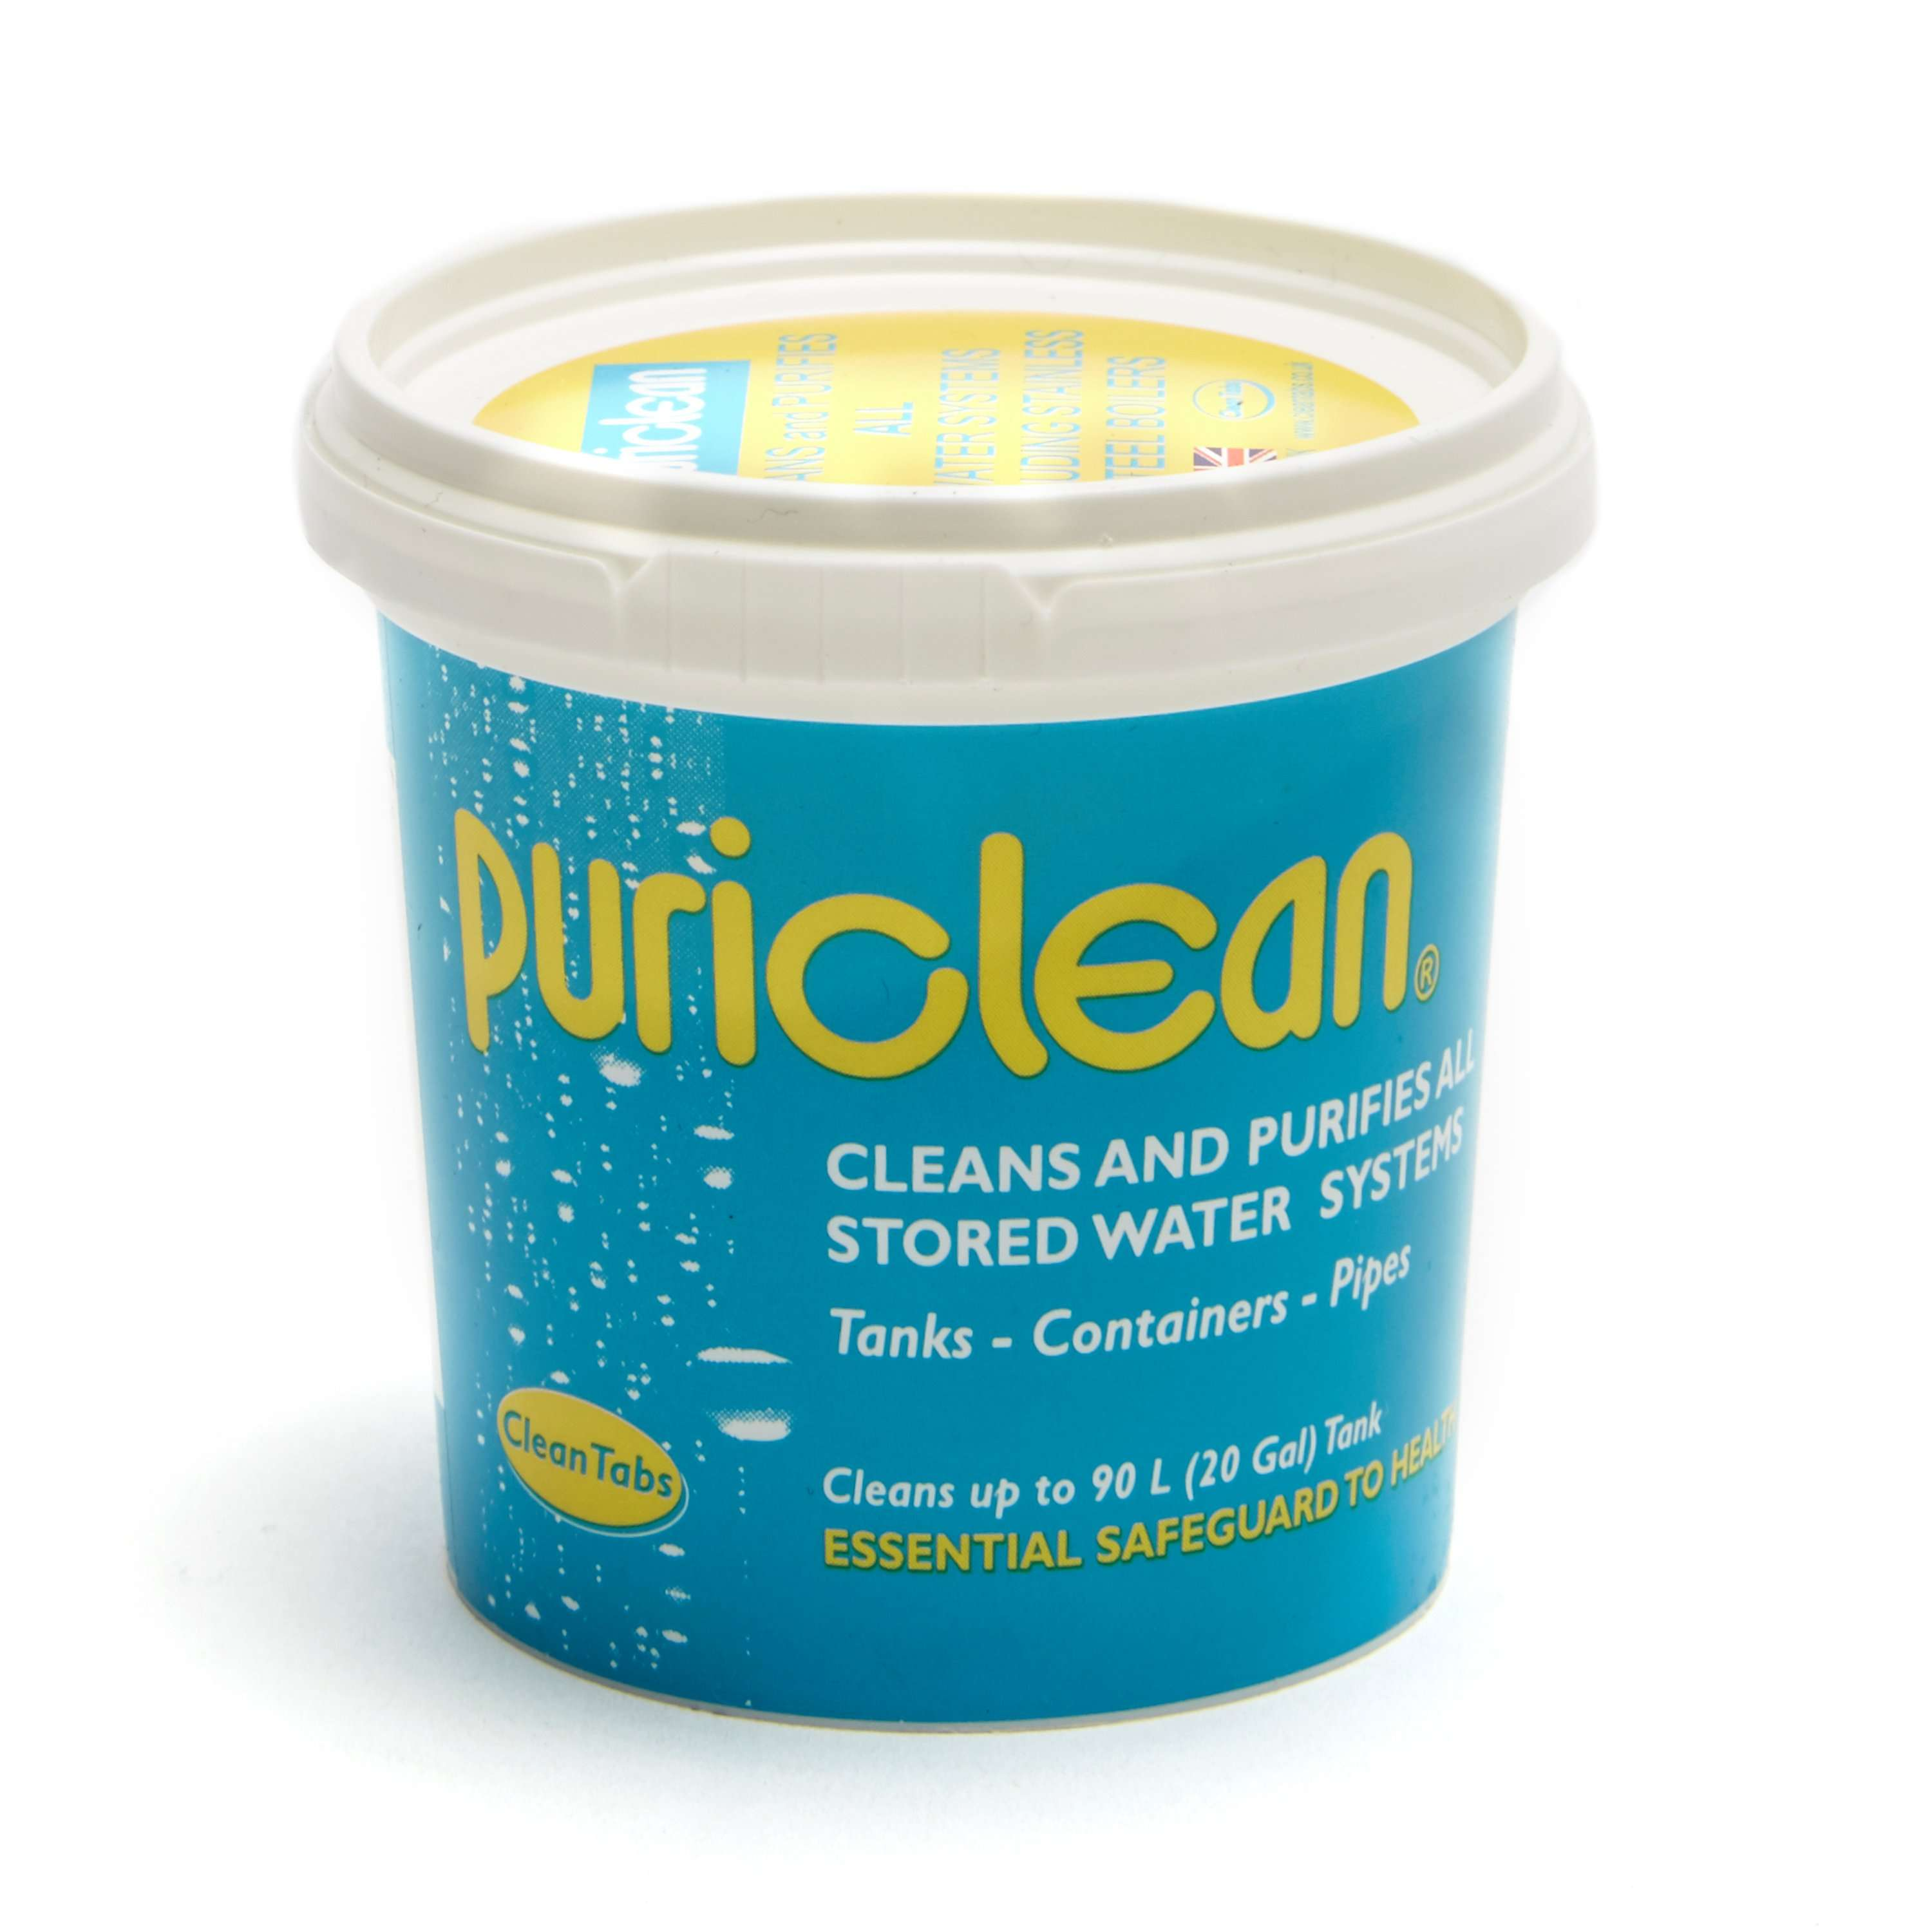 QUEST Puriclean Water Purifier 100g